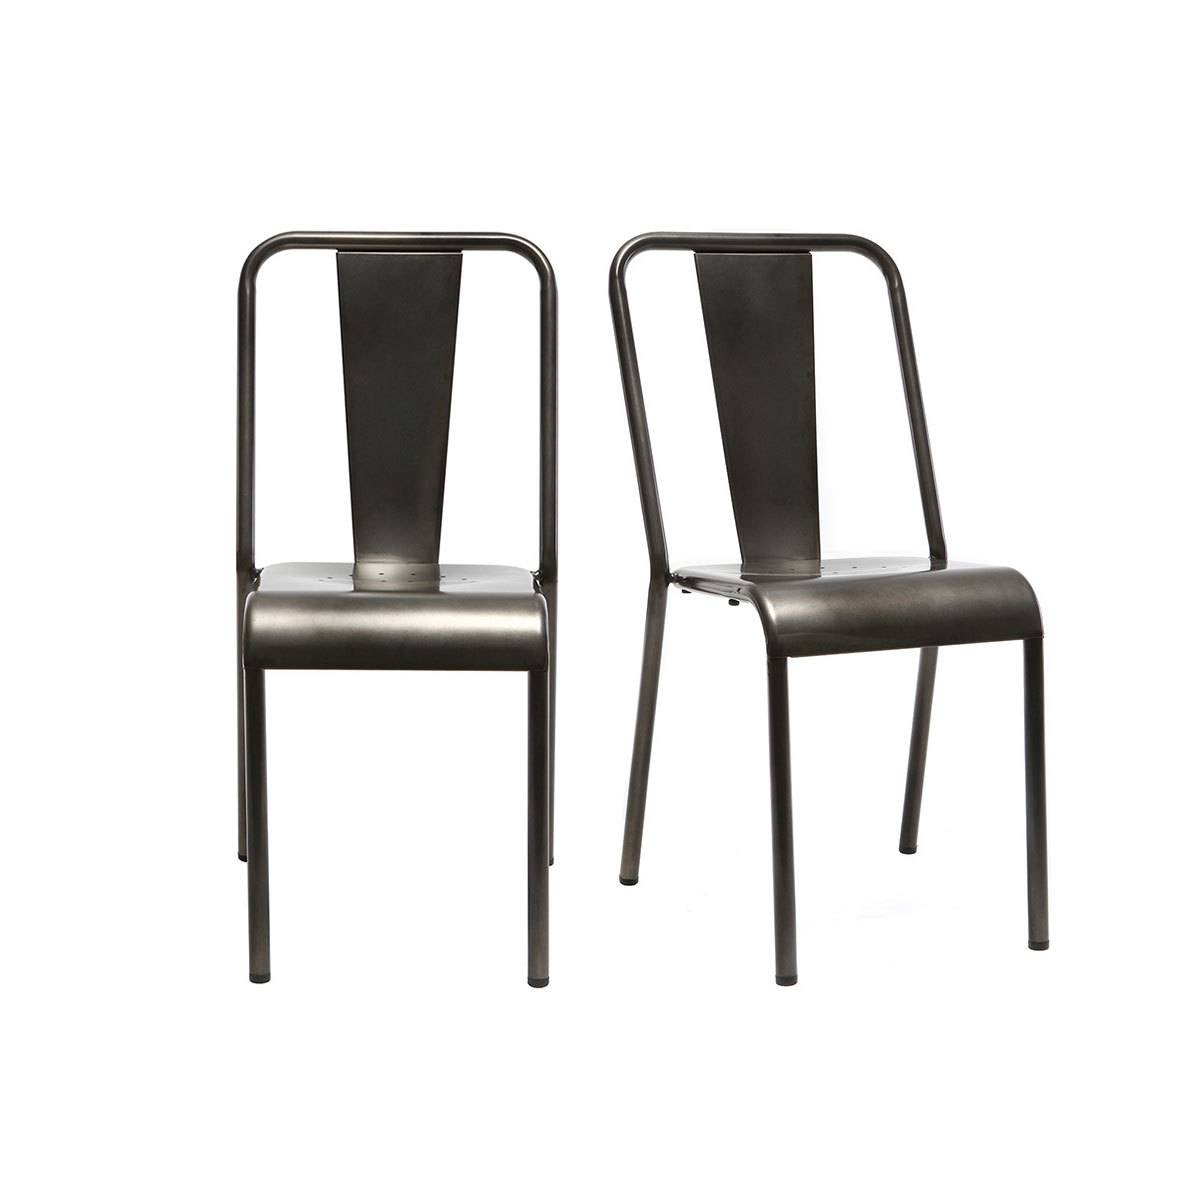 Miliboo Chaises design métal inox (lot de 2) EVAN